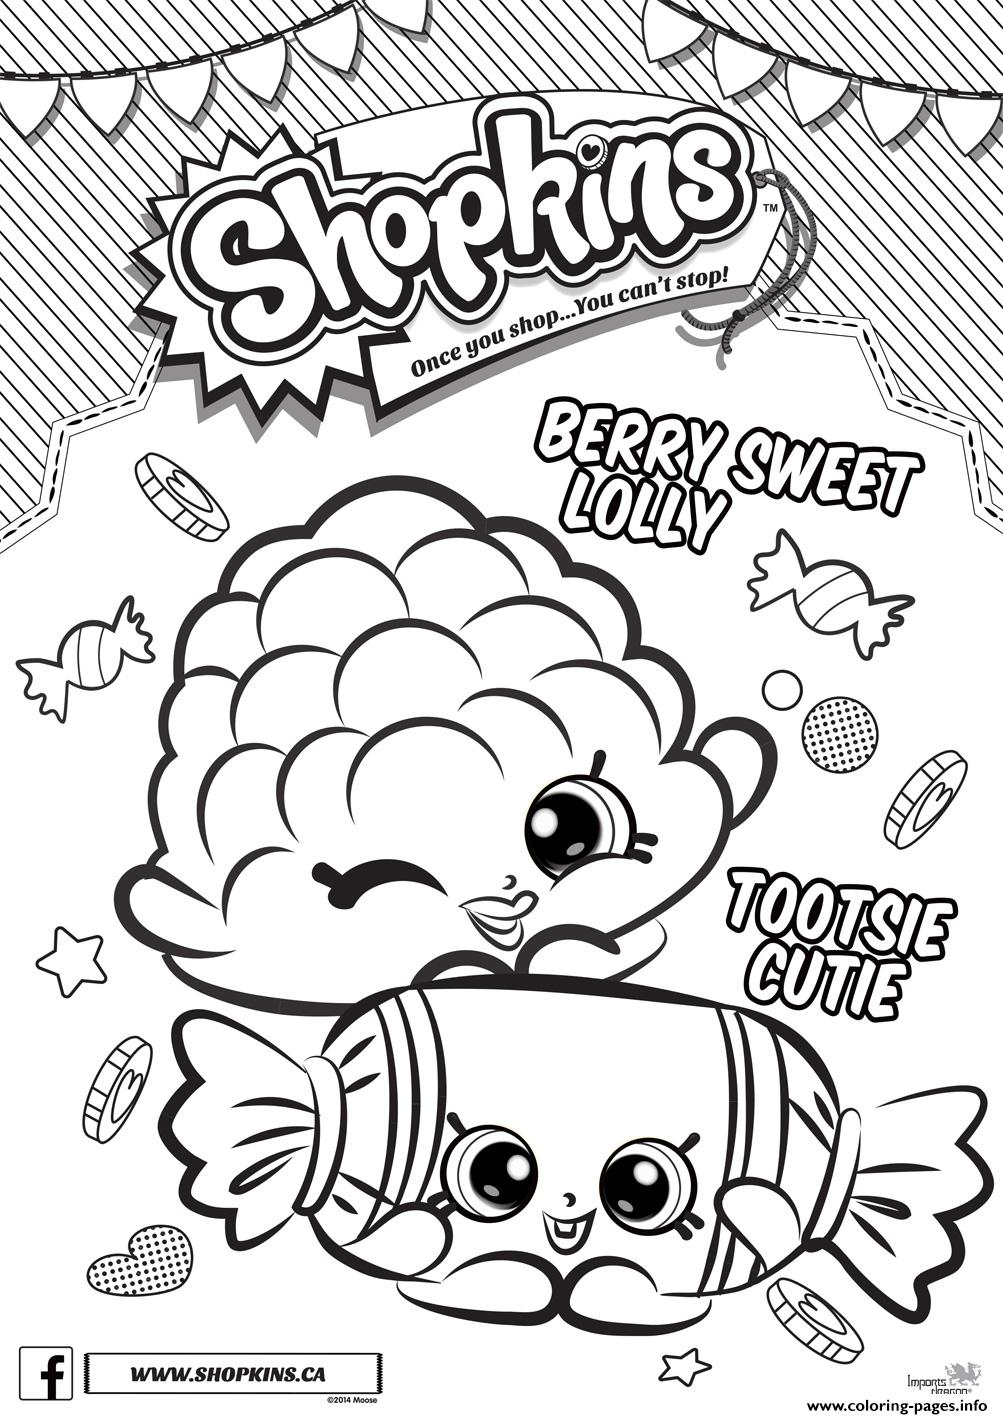 Shopkins Berry Sweet Lolly Tootsie Cutie Coloring Pages Printable